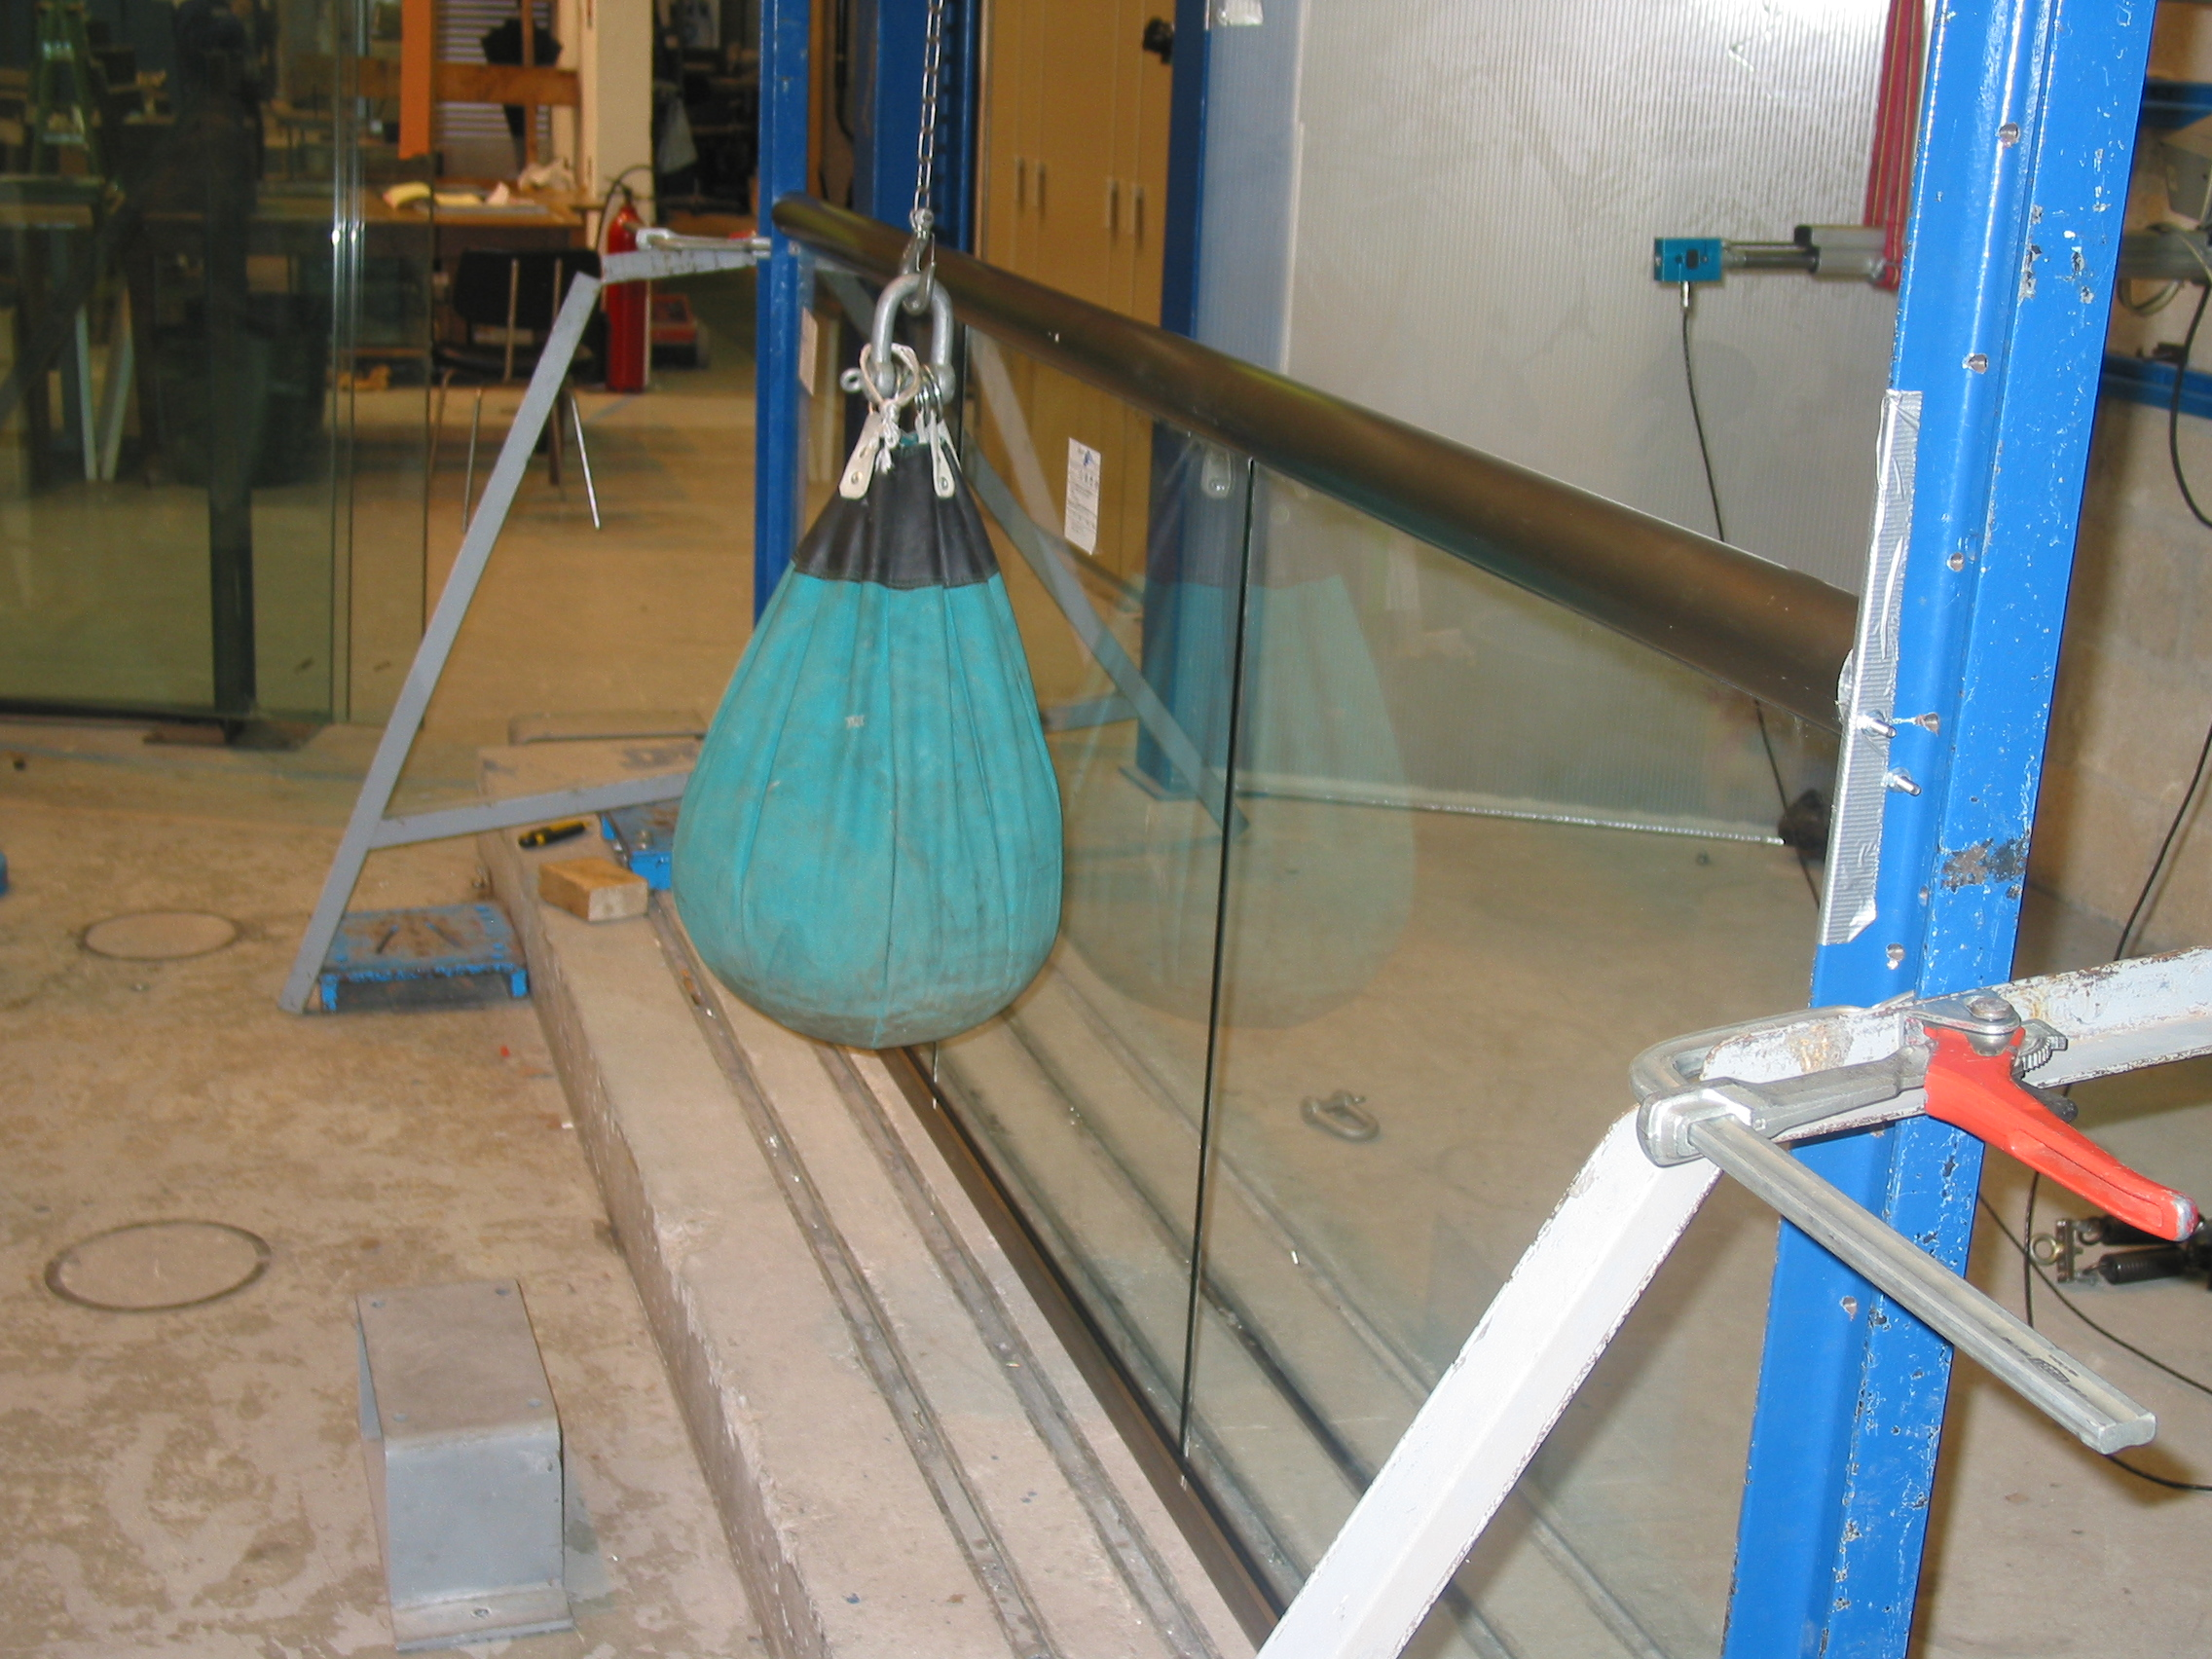 Impact testing on the glass and balustrade